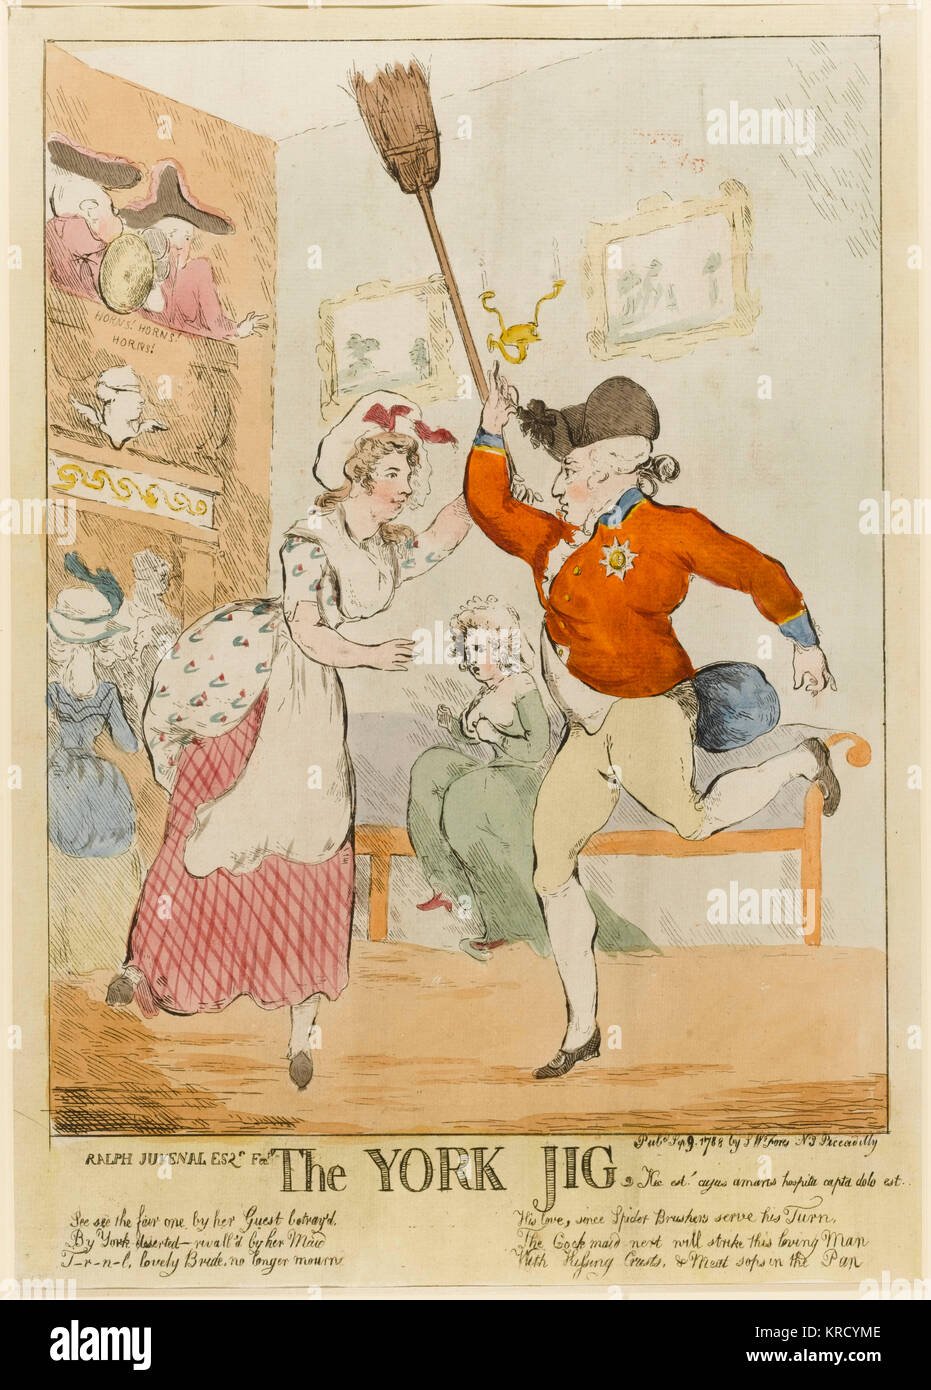 Satirical cartoon, The York Jig.  The Duke of York dances a jig with Lady Tyrconnel's maid.  Lady Tyrconnel, - Stock Image